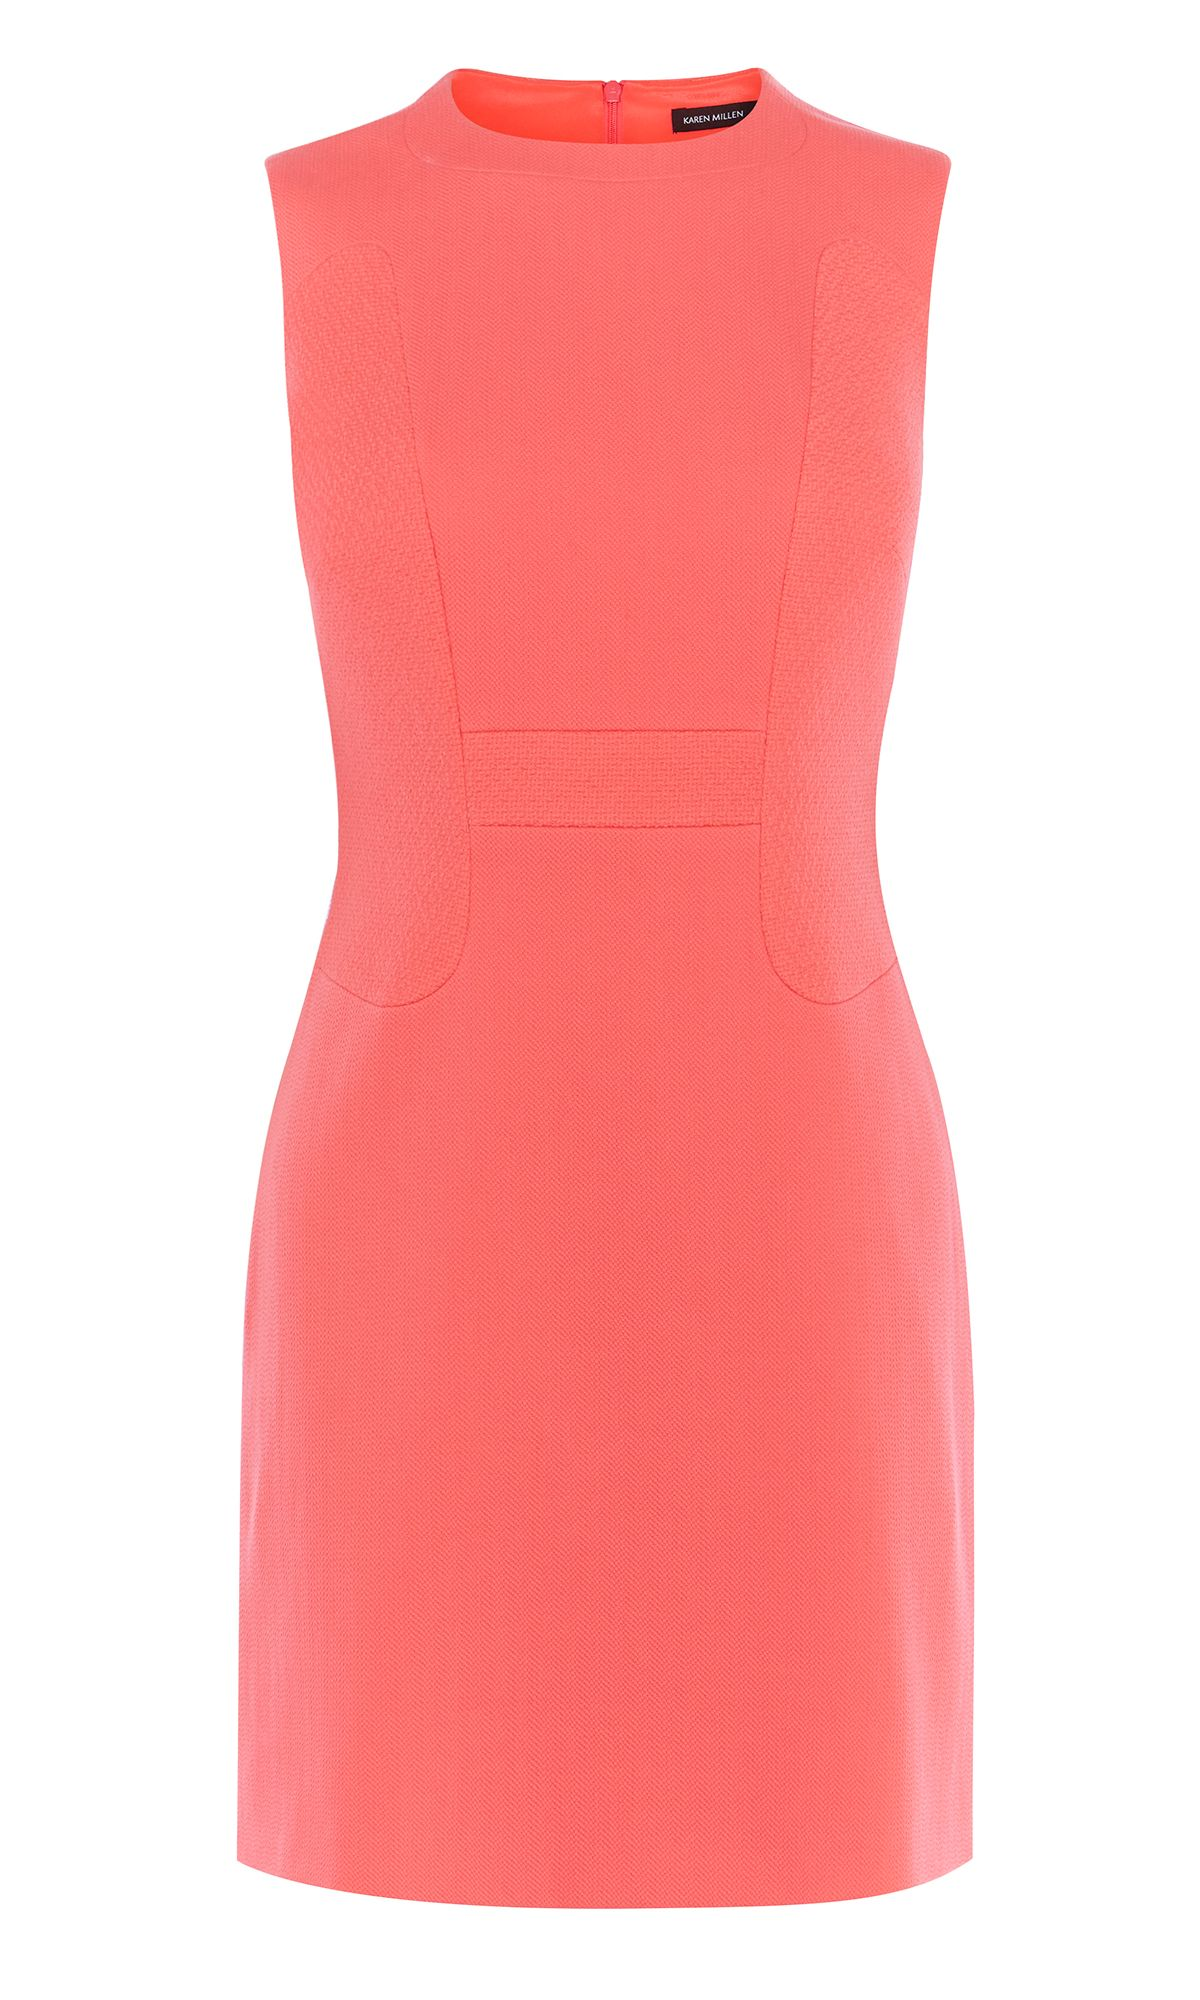 Karen Millen Textured Fitted Dress, Coral